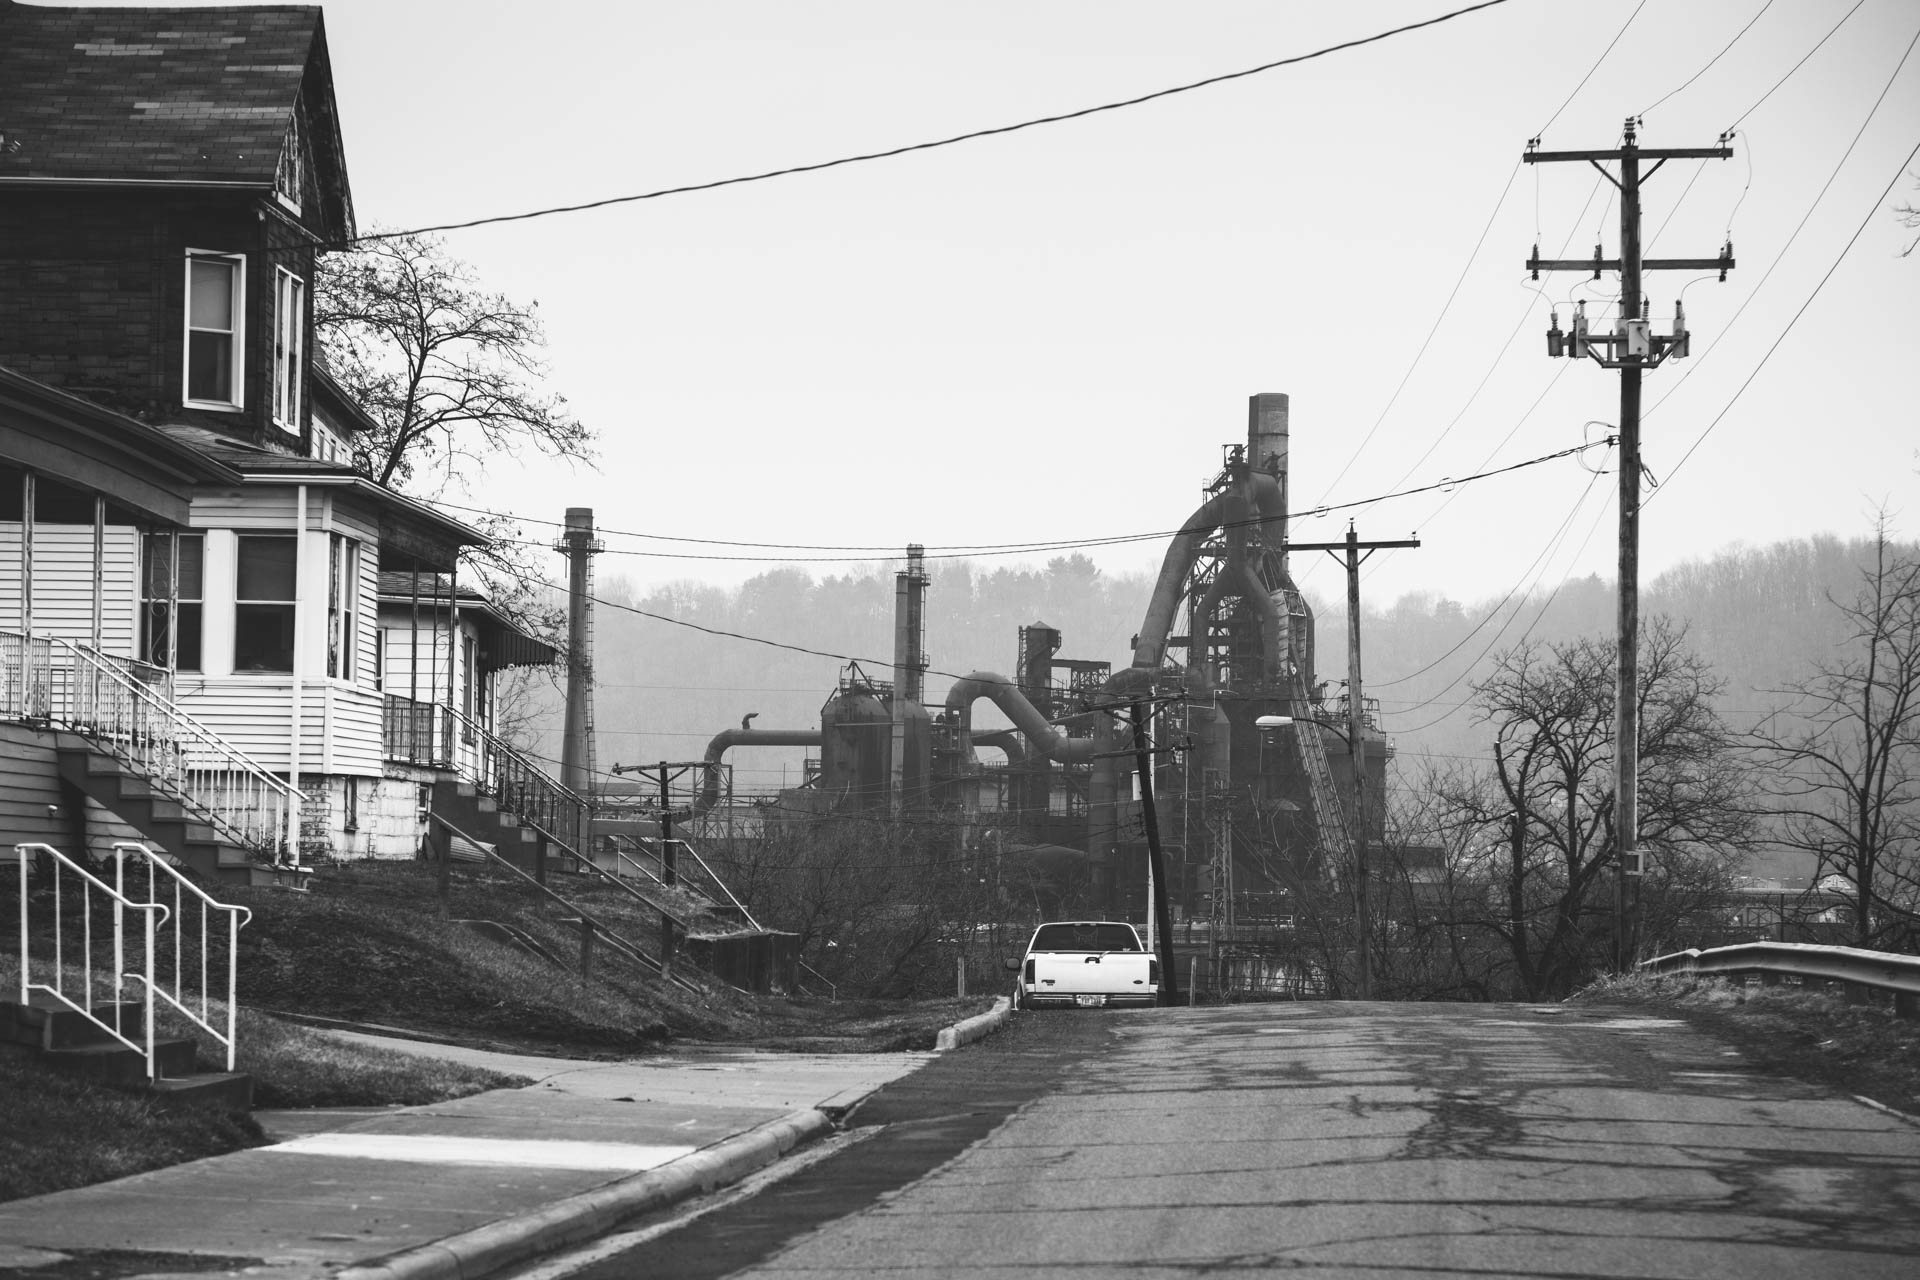 wheeling-pittsburgh-steel-company-mingo-jct-oh-4429untitled